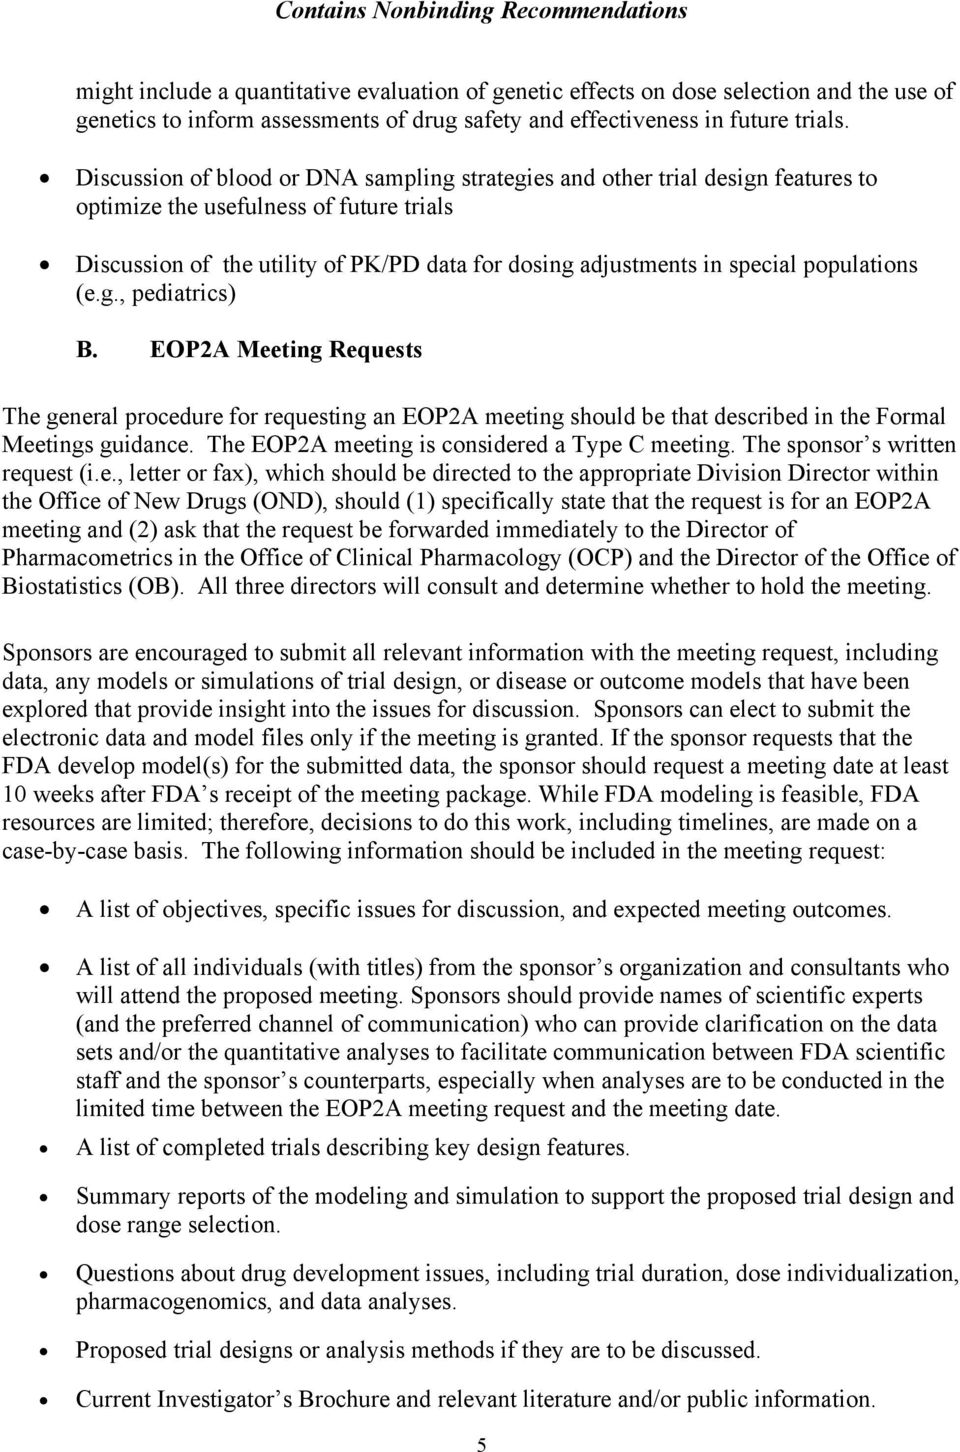 populations (e.g., pediatrics) B. EOP2A Meeting Requests The general procedure for requesting an EOP2A meeting should be that described in the Formal Meetings guidance.